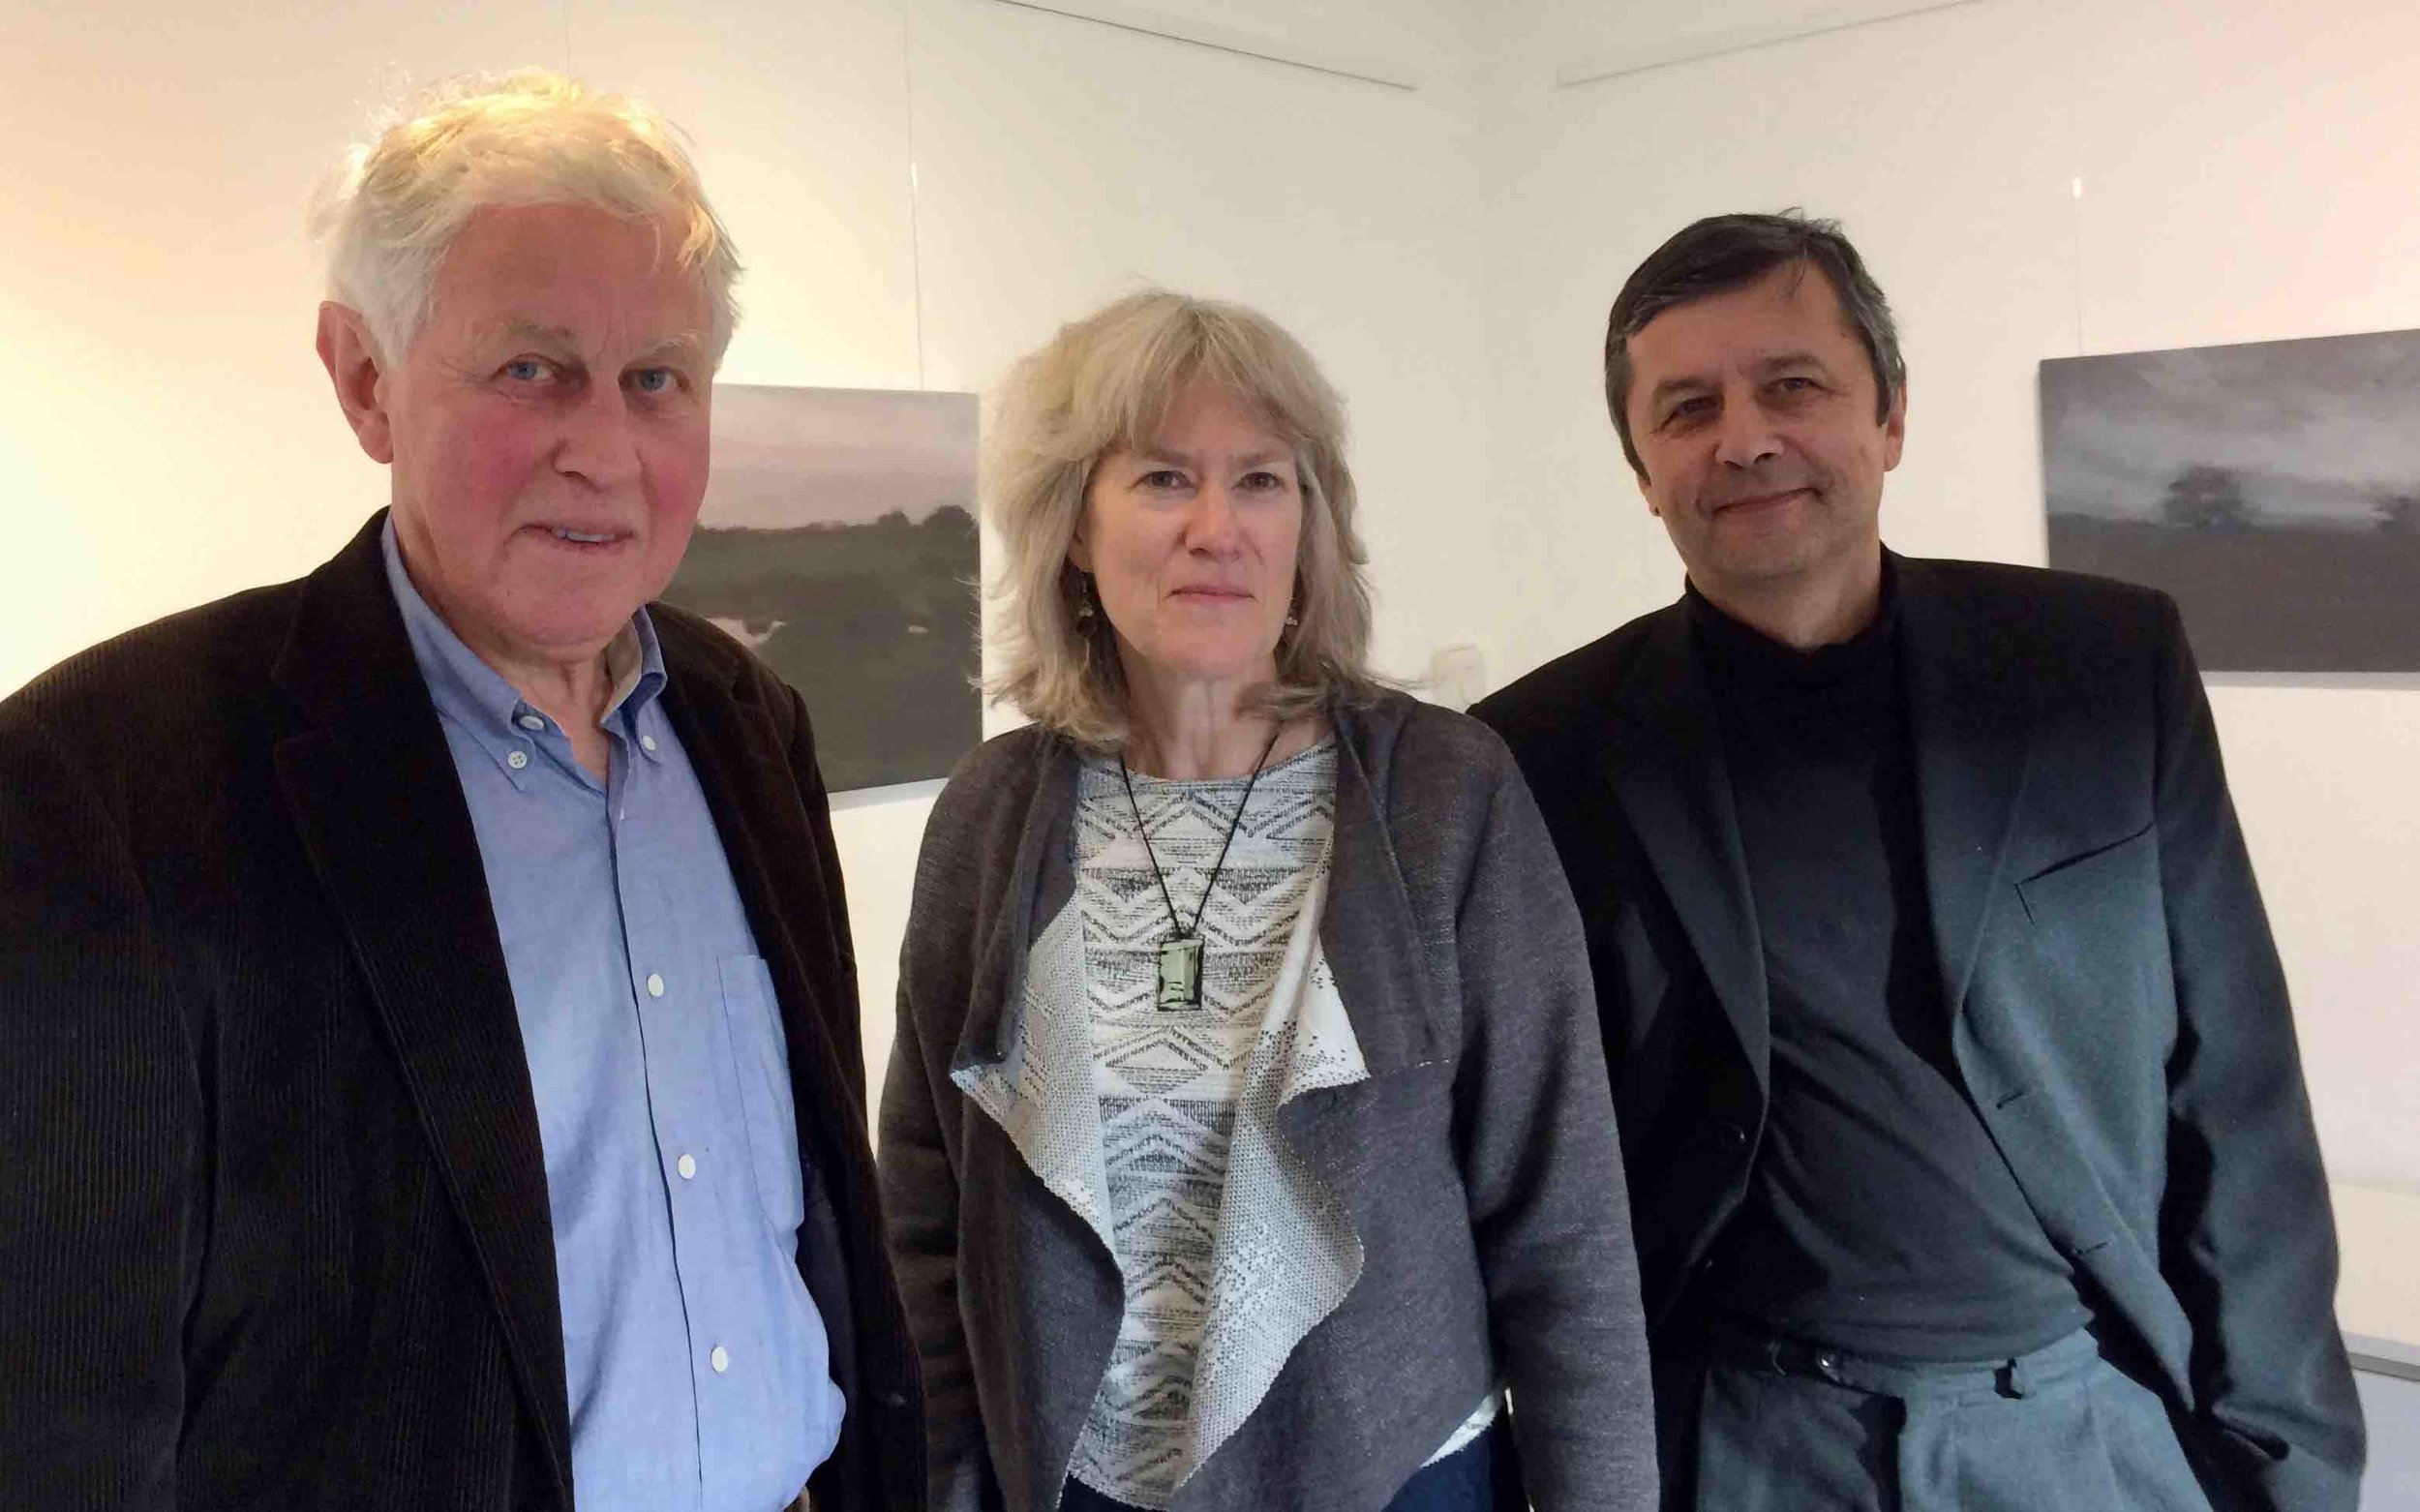 David and Jean with composer/pianist Pavel Novak - London Oct 2017 (w/Jenifer Wakelyn's paintings in the background)